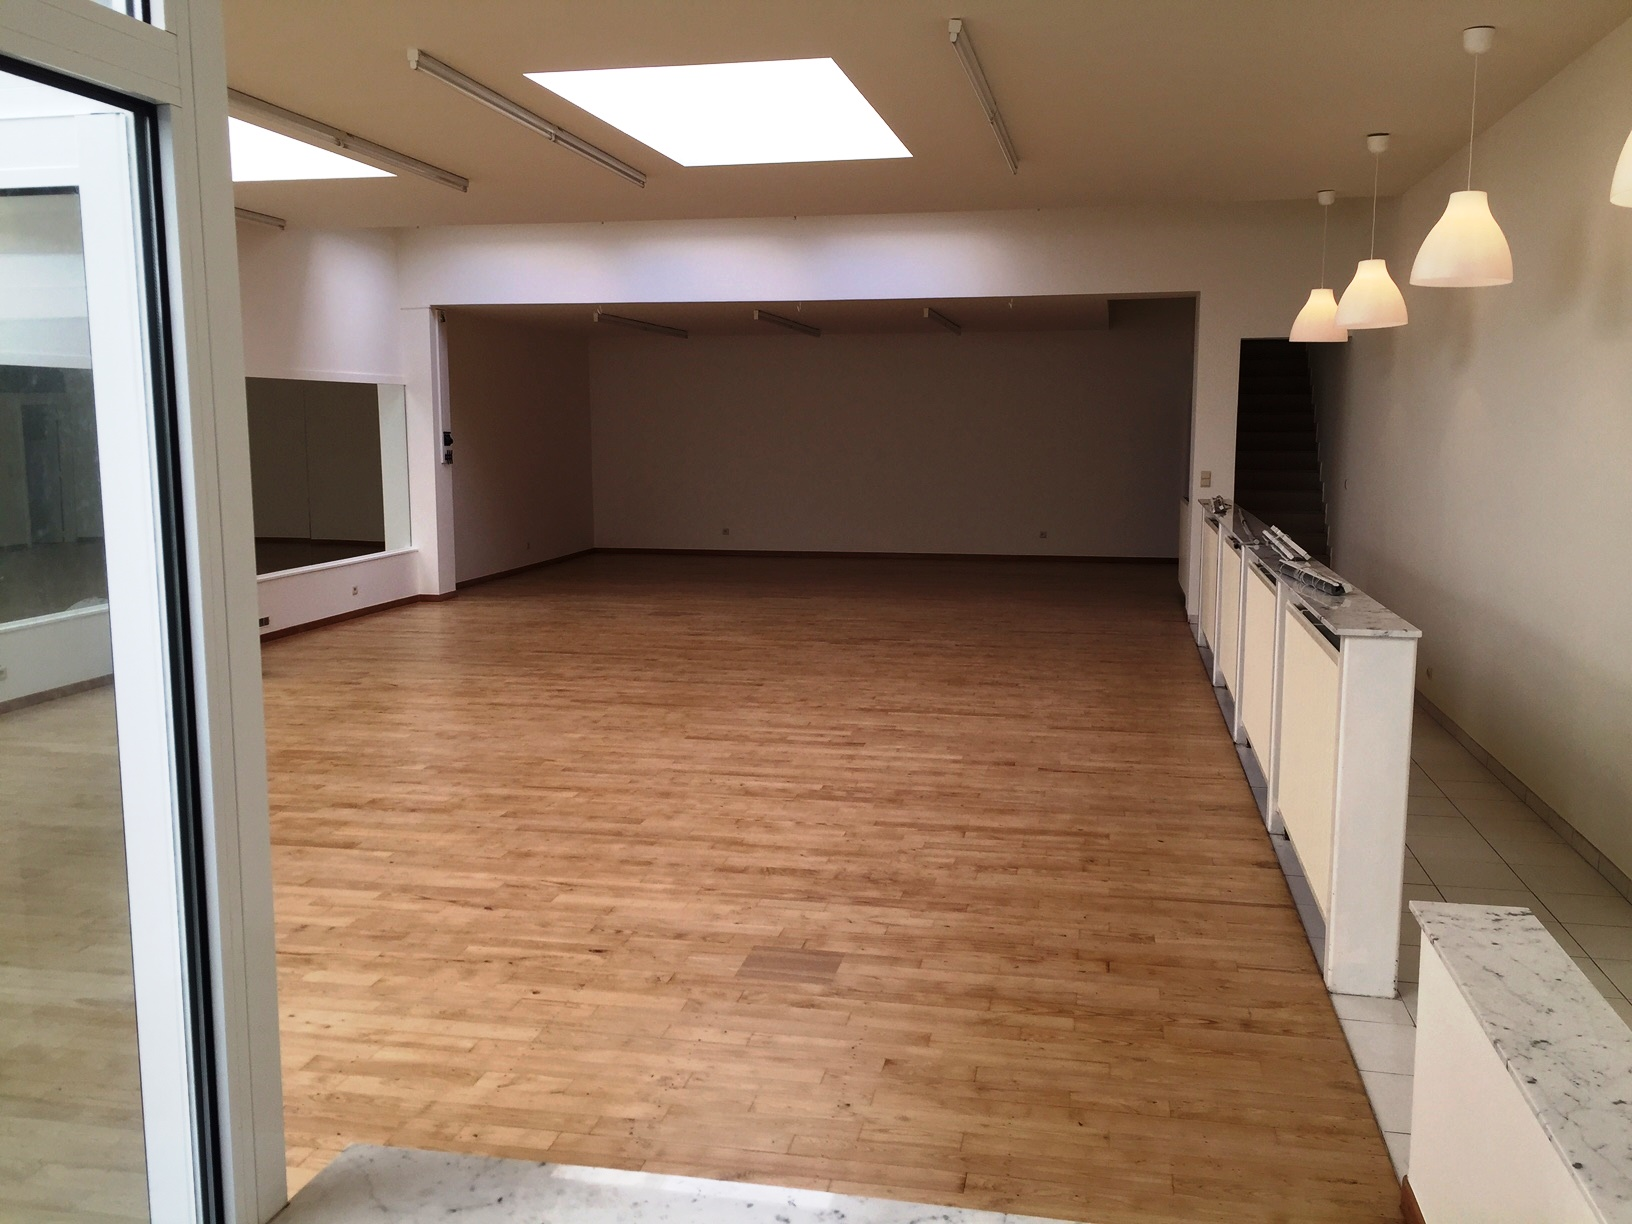 Warehouse rented in Uccle